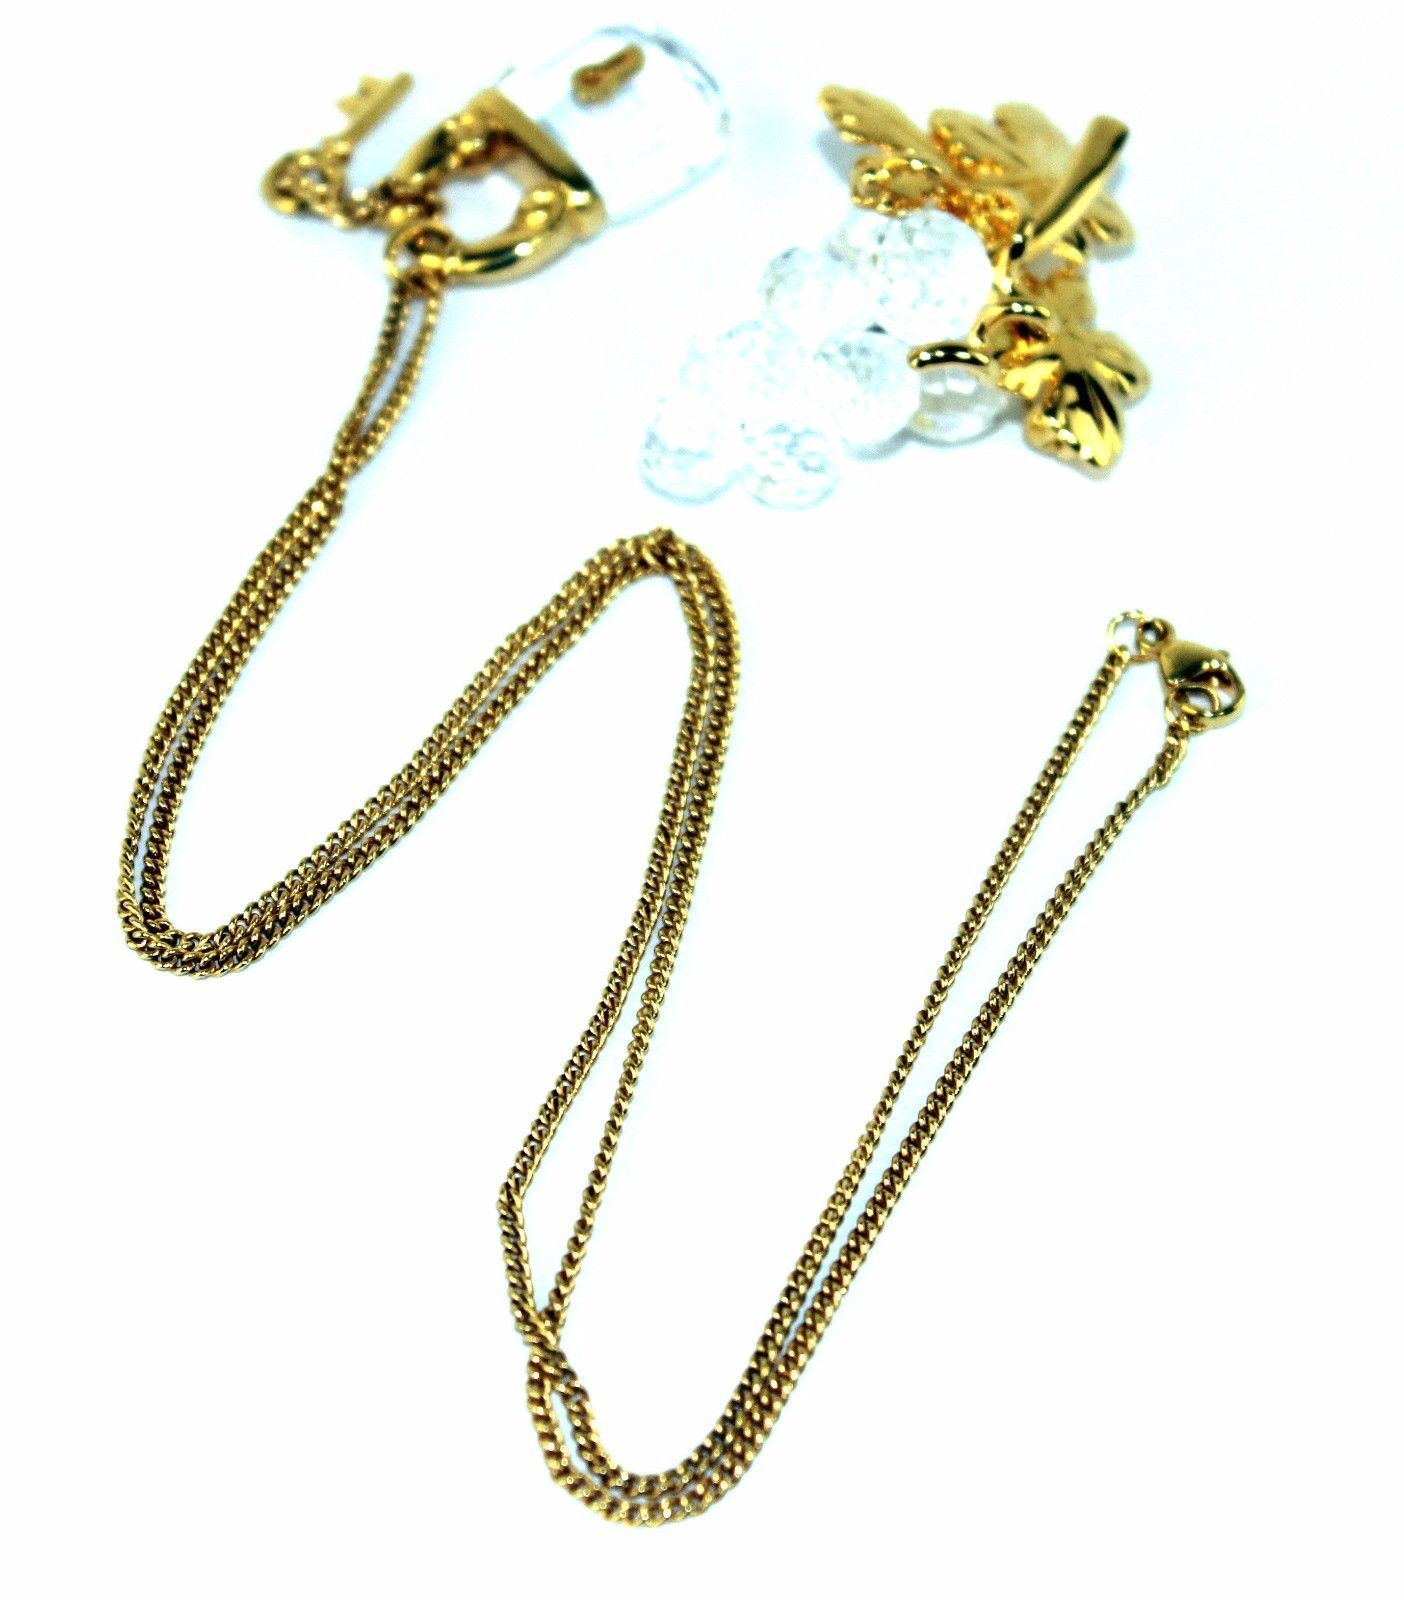 Auth Swarovski Gold Tone & Crystal Lock Pendant Chain Necklace W/ Brooch Unused